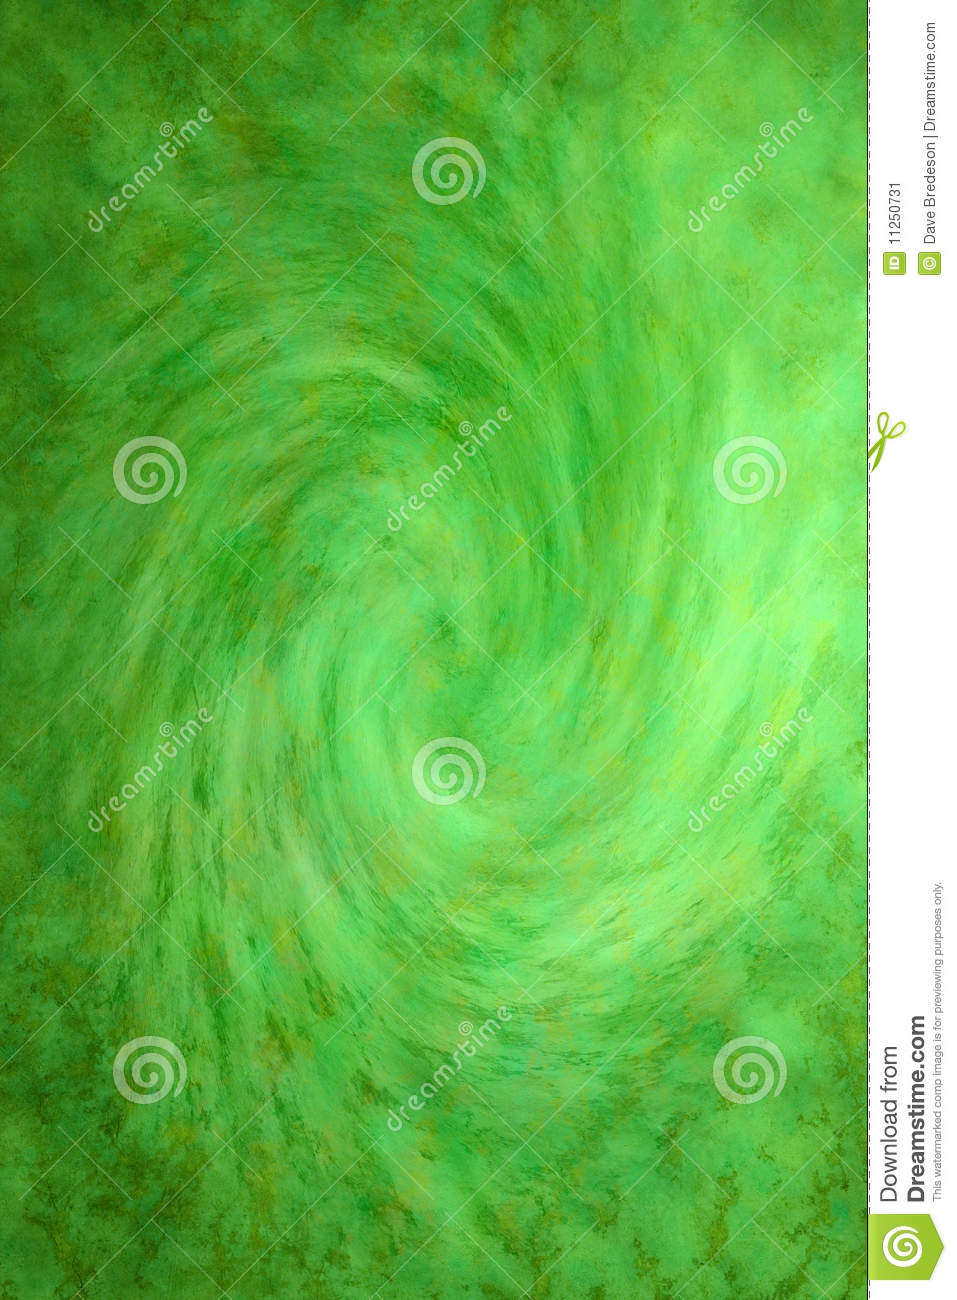 Painted Green Swirl Background